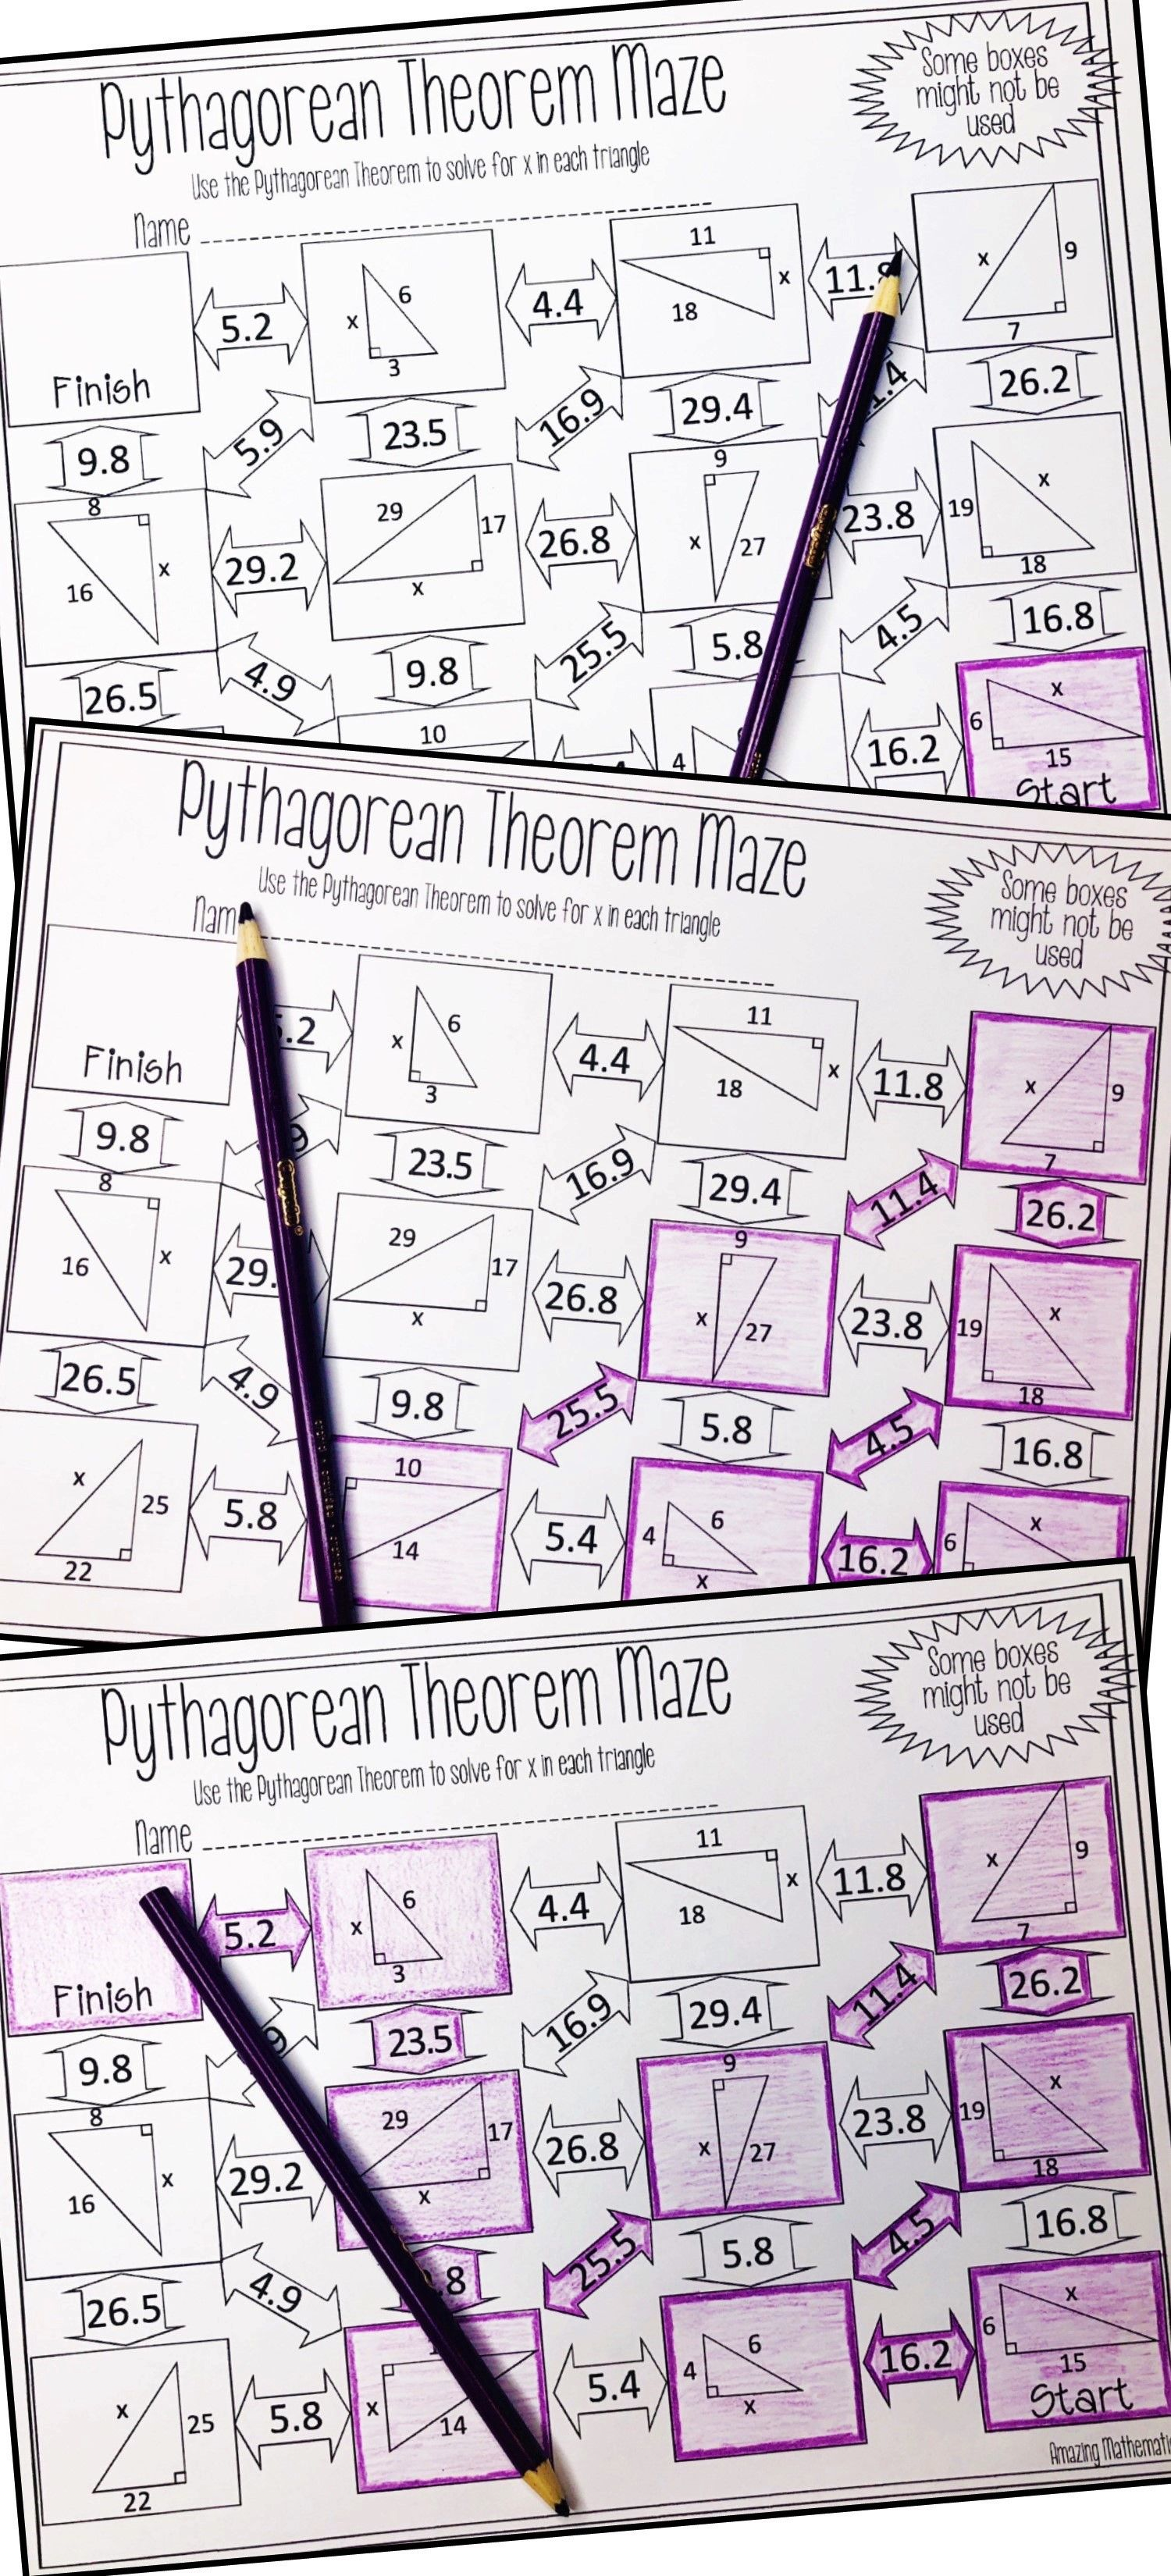 This Pythagorean Theorem Maze Was The Perfect Worksheet To Help With Teaching Pytha Pythagorean Theorem Worksheet Pythagorean Theorem 8th Grade Math Worksheets